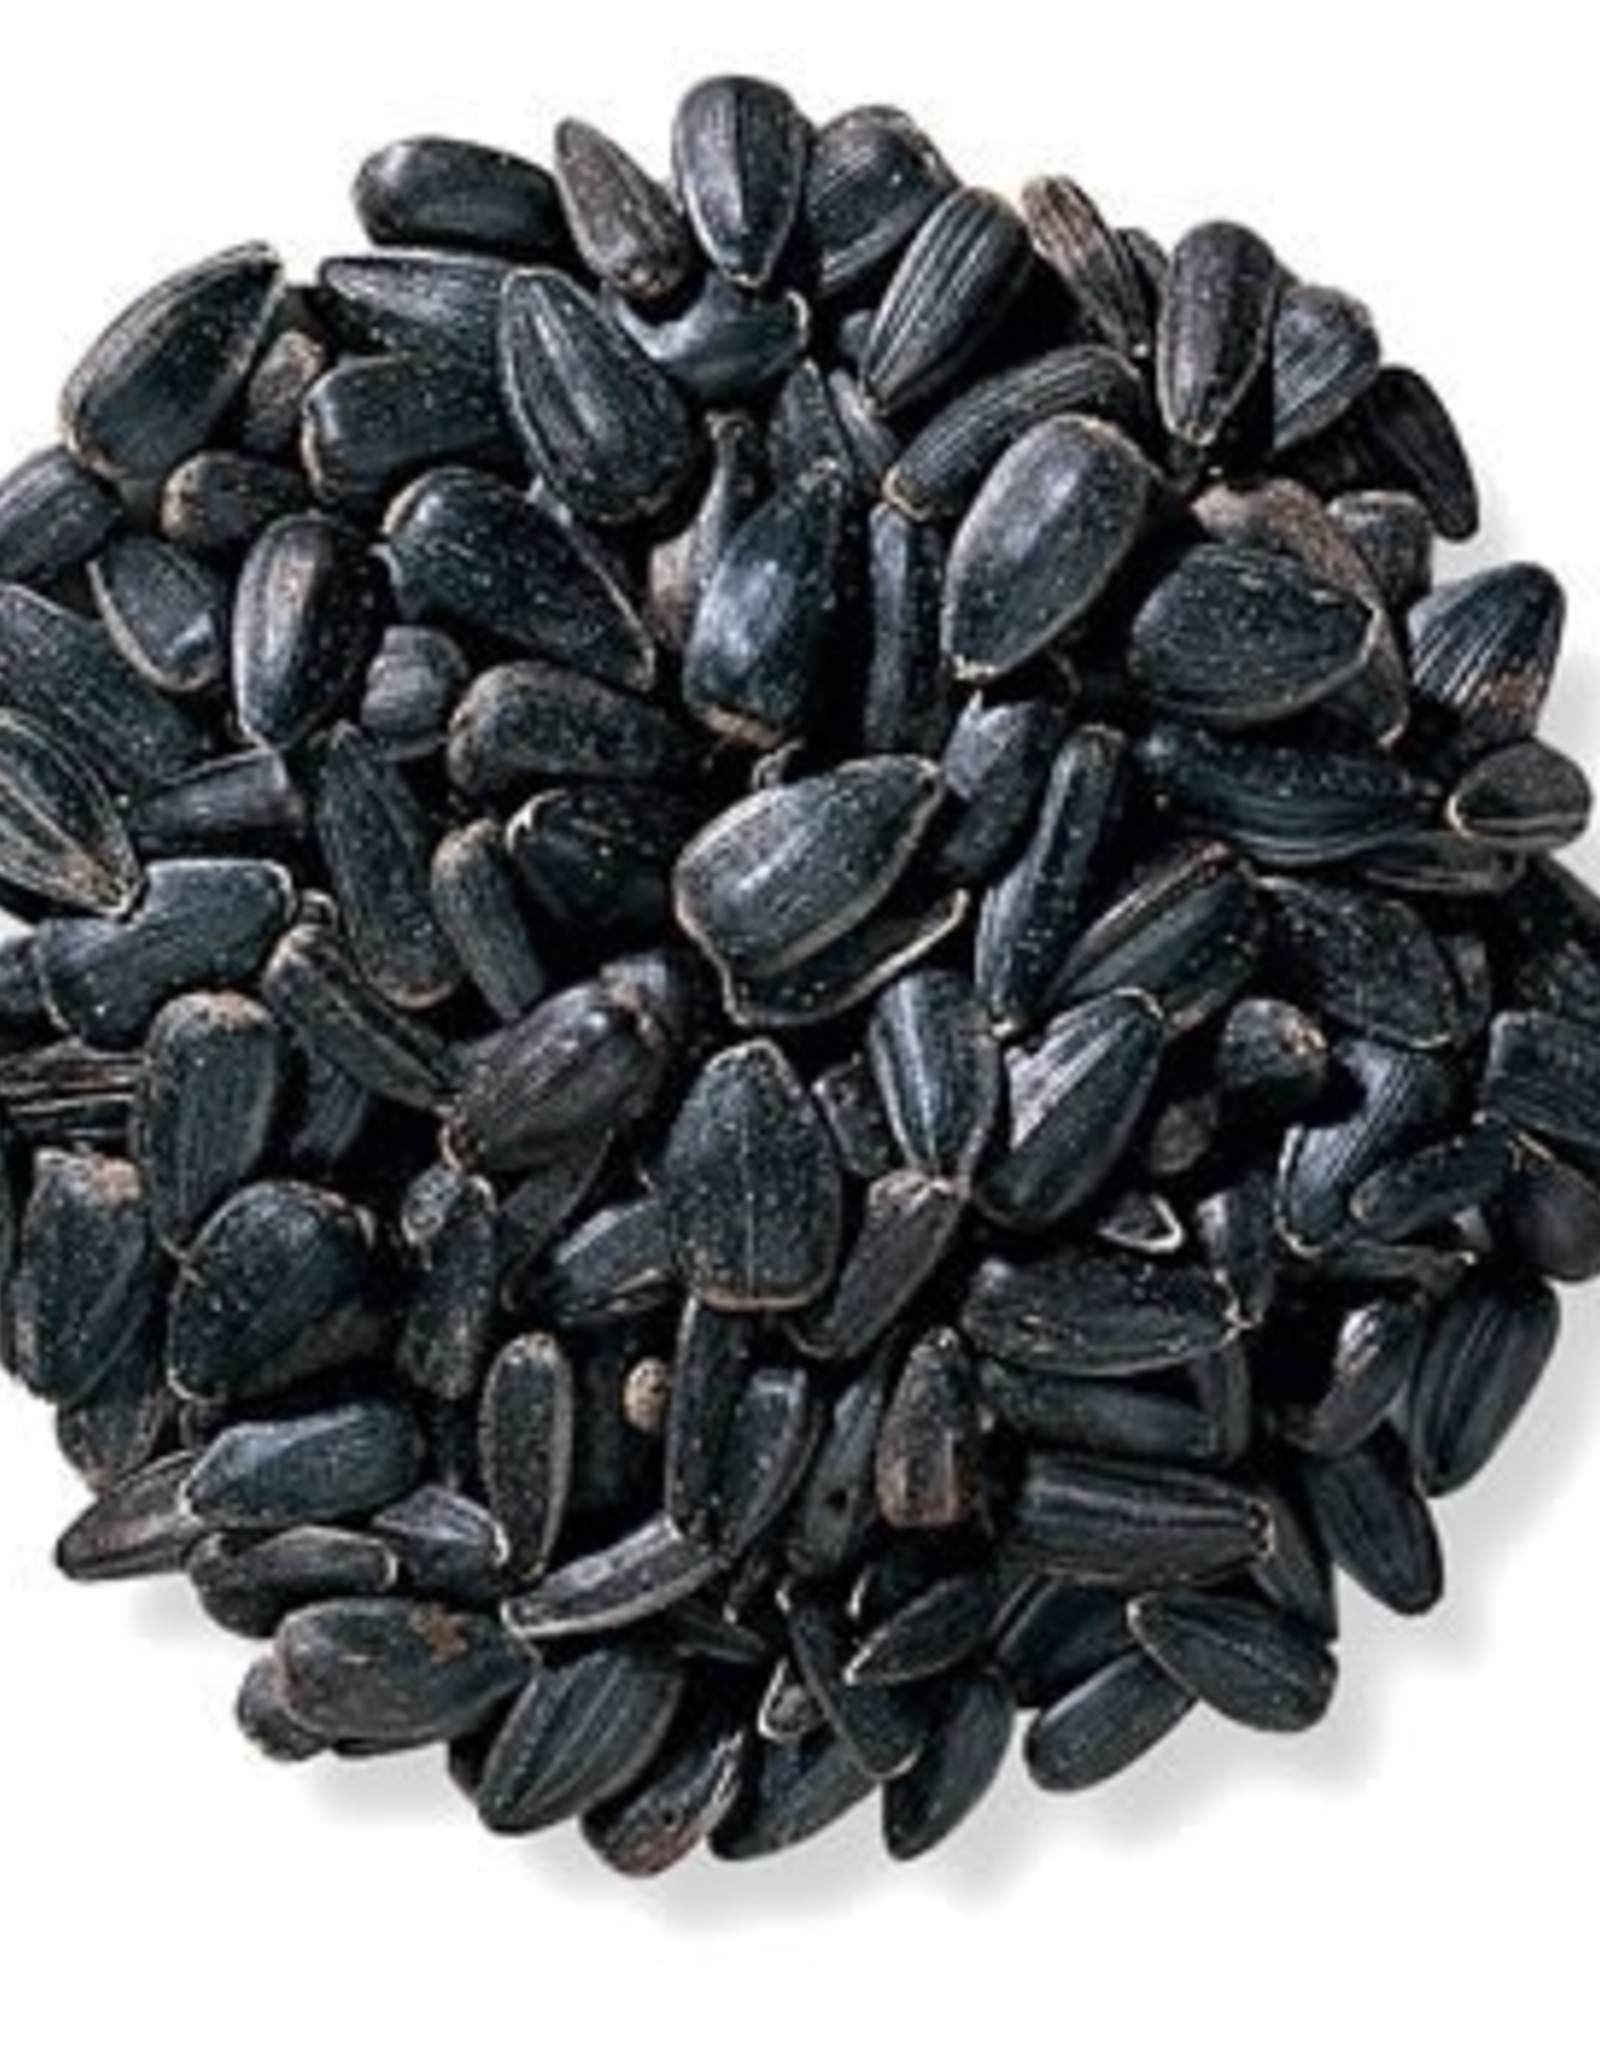 Seed to Sky Black Oil Sunflower 18.2kg/40lb